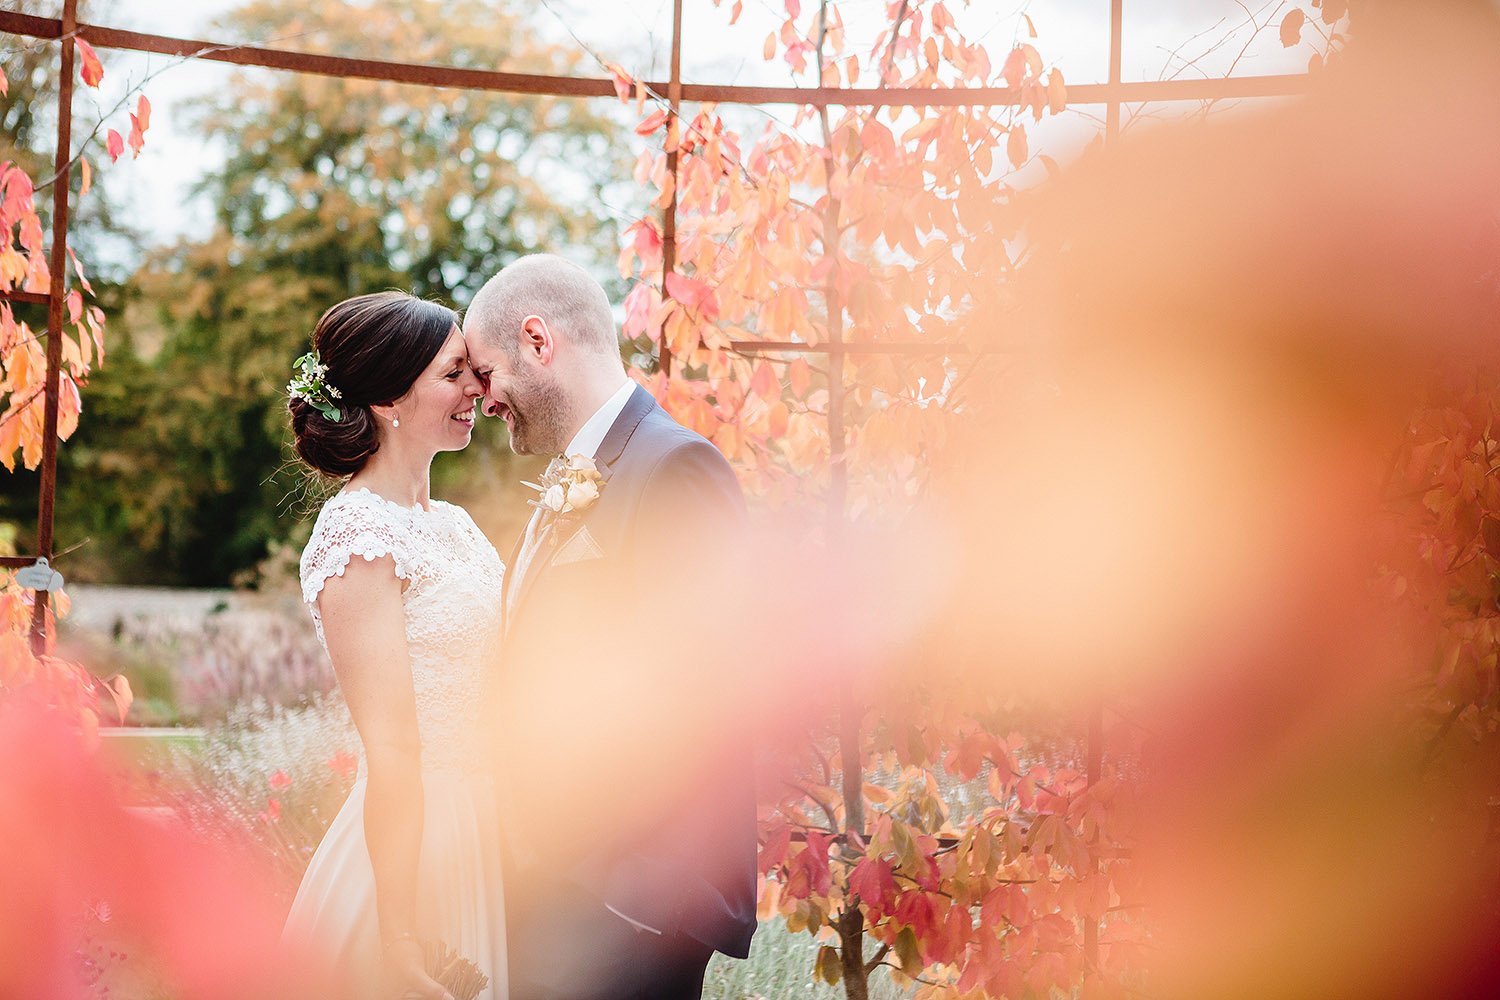 Leeds wedding photographer captures newlyweds through Autumnal leaves